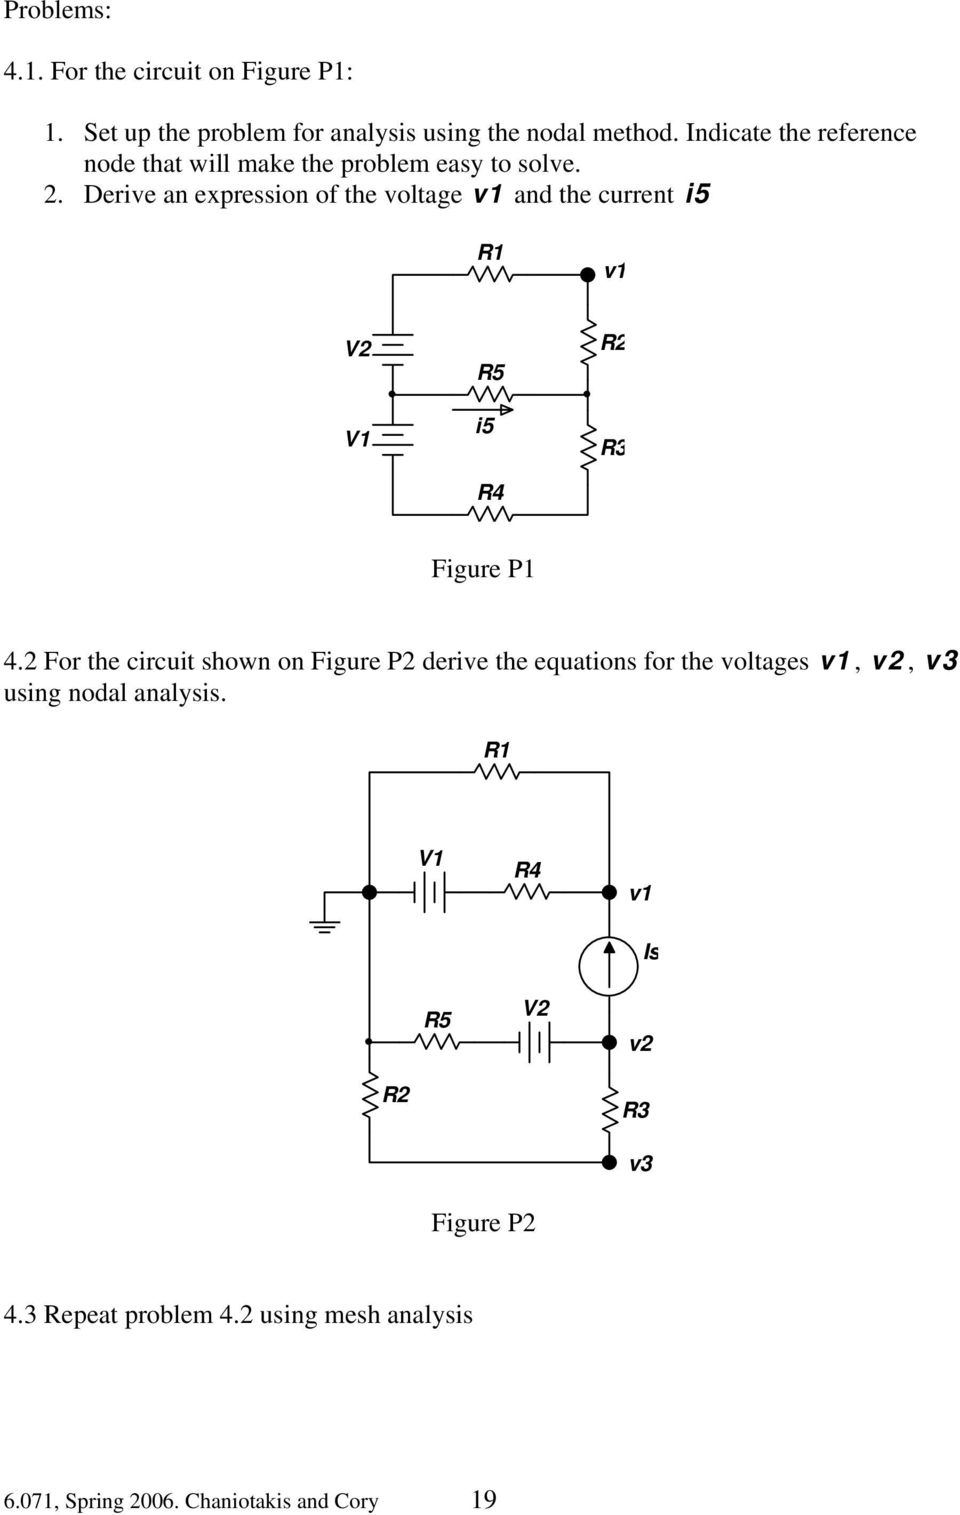 Circuit Analysis Using The Node And Mesh Methods Pdf Logic Gate Diagram Created From Analytical Formulas Derive An Expression Of Voltage V1 Current I5 V2 R5